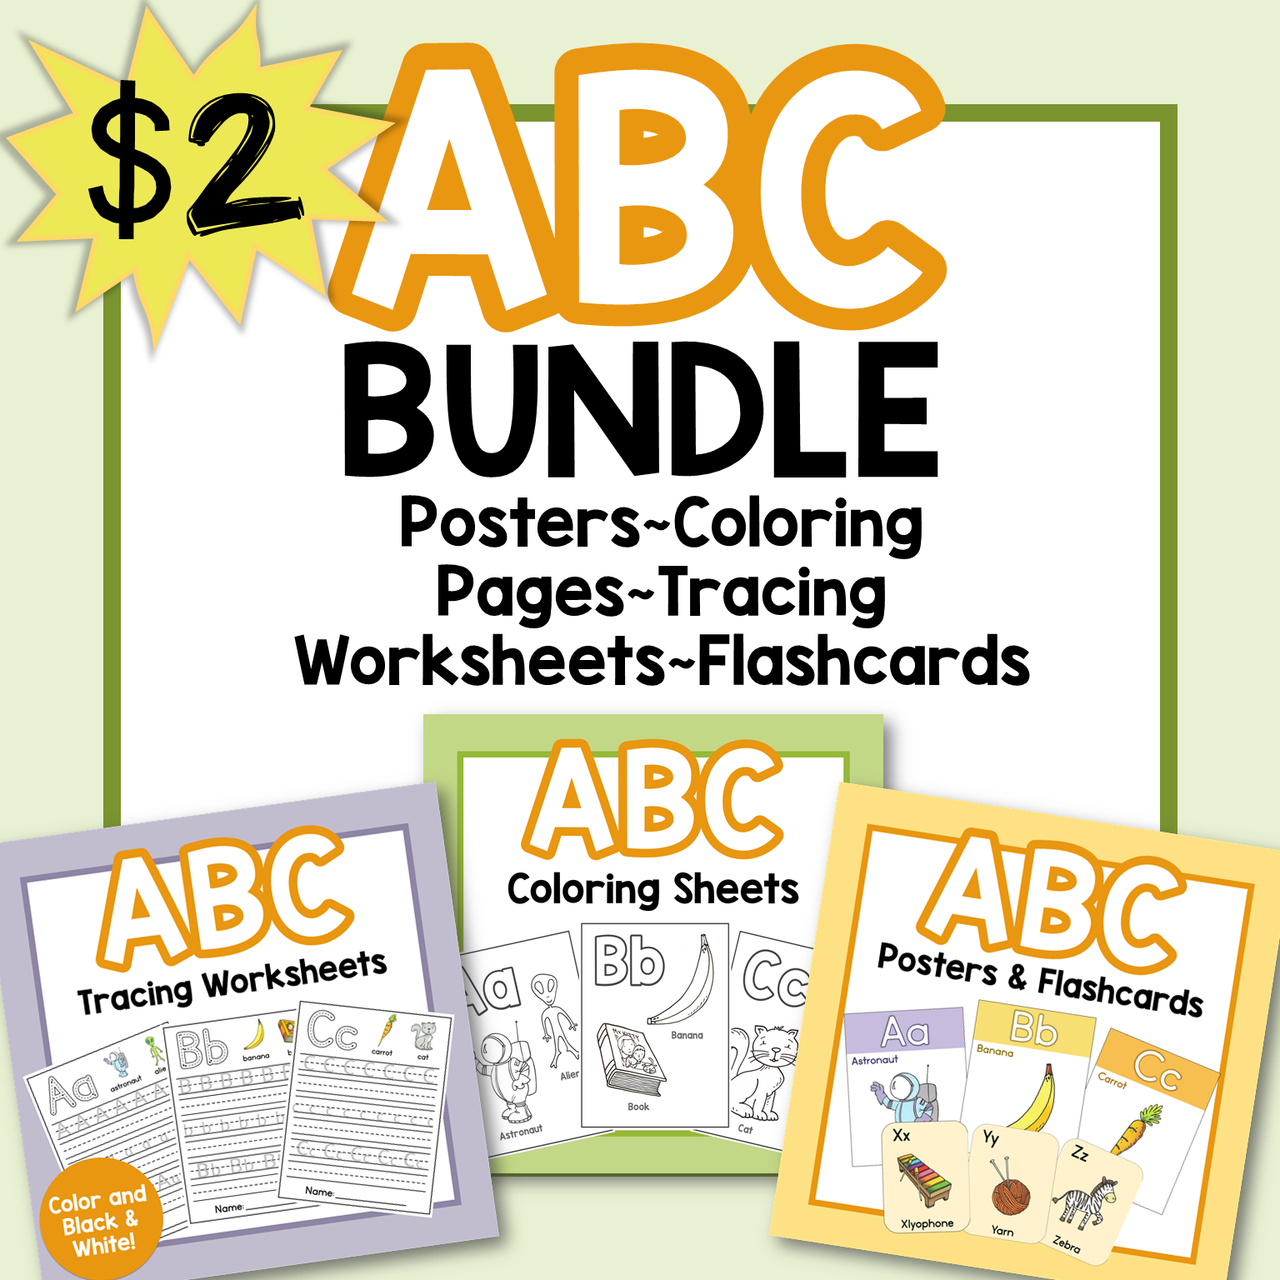 ABC Alphabet Bundle Worksheets/Posters/Coloring Pages/Flashcards